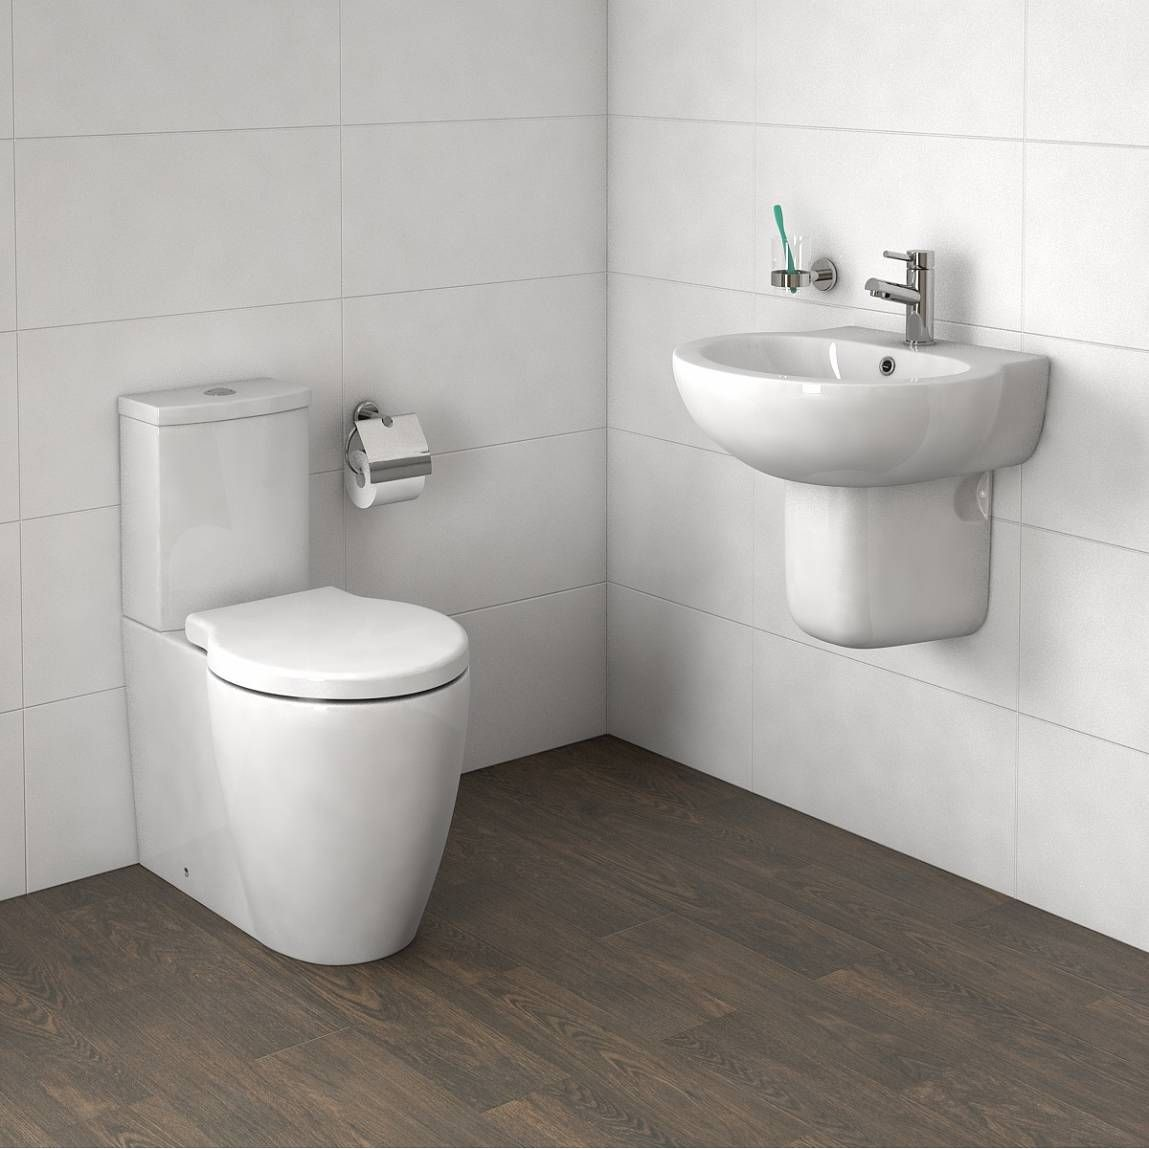 Bathroom Accessories Victoria Plumb mode maine close coupled toilet and semi pedestal basin suite